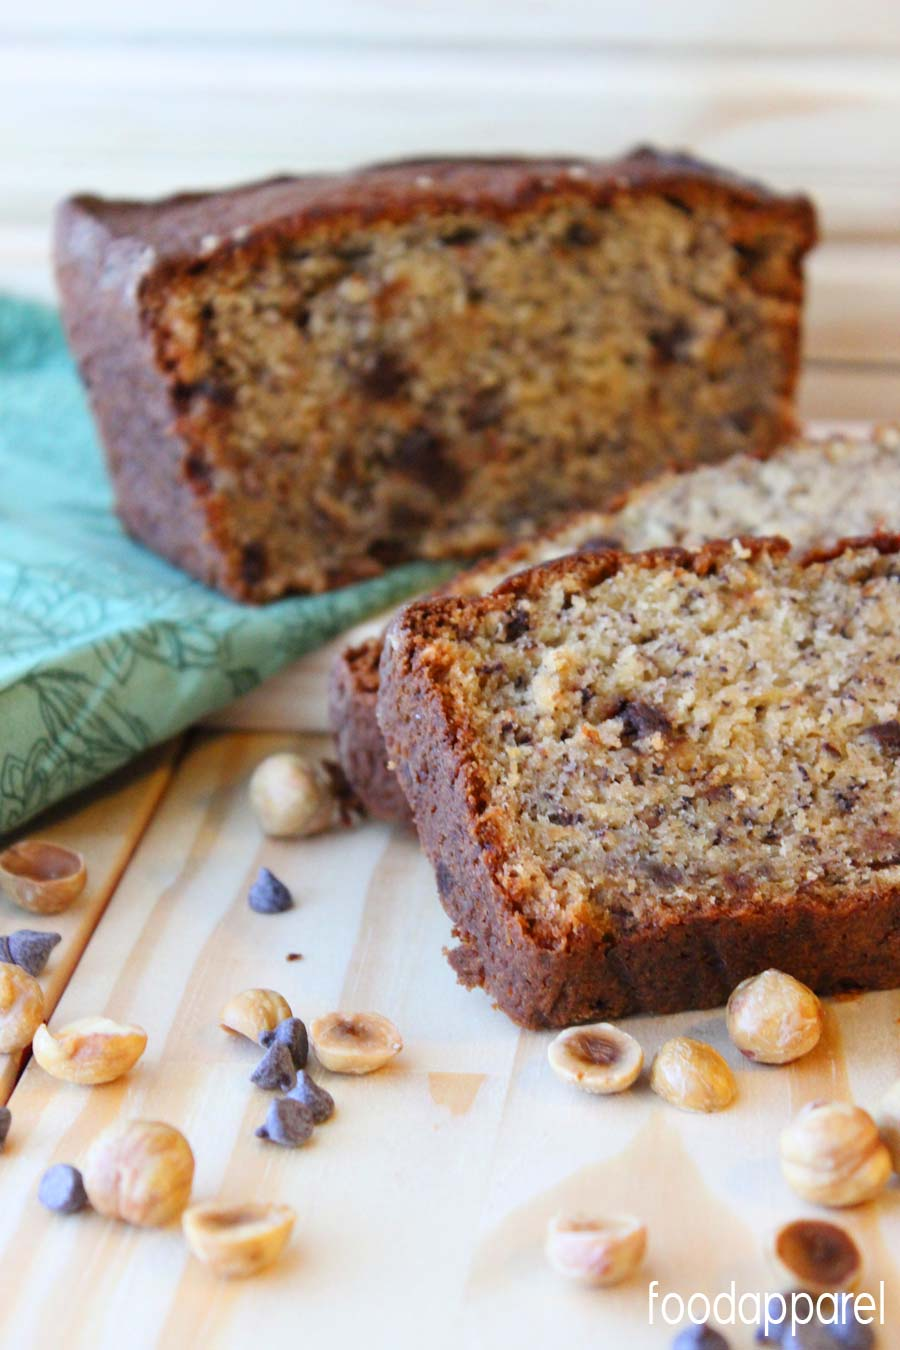 Hazelnut banana bread recipe or muffins food apparel hazelnut banana bread foodapparel forumfinder Images